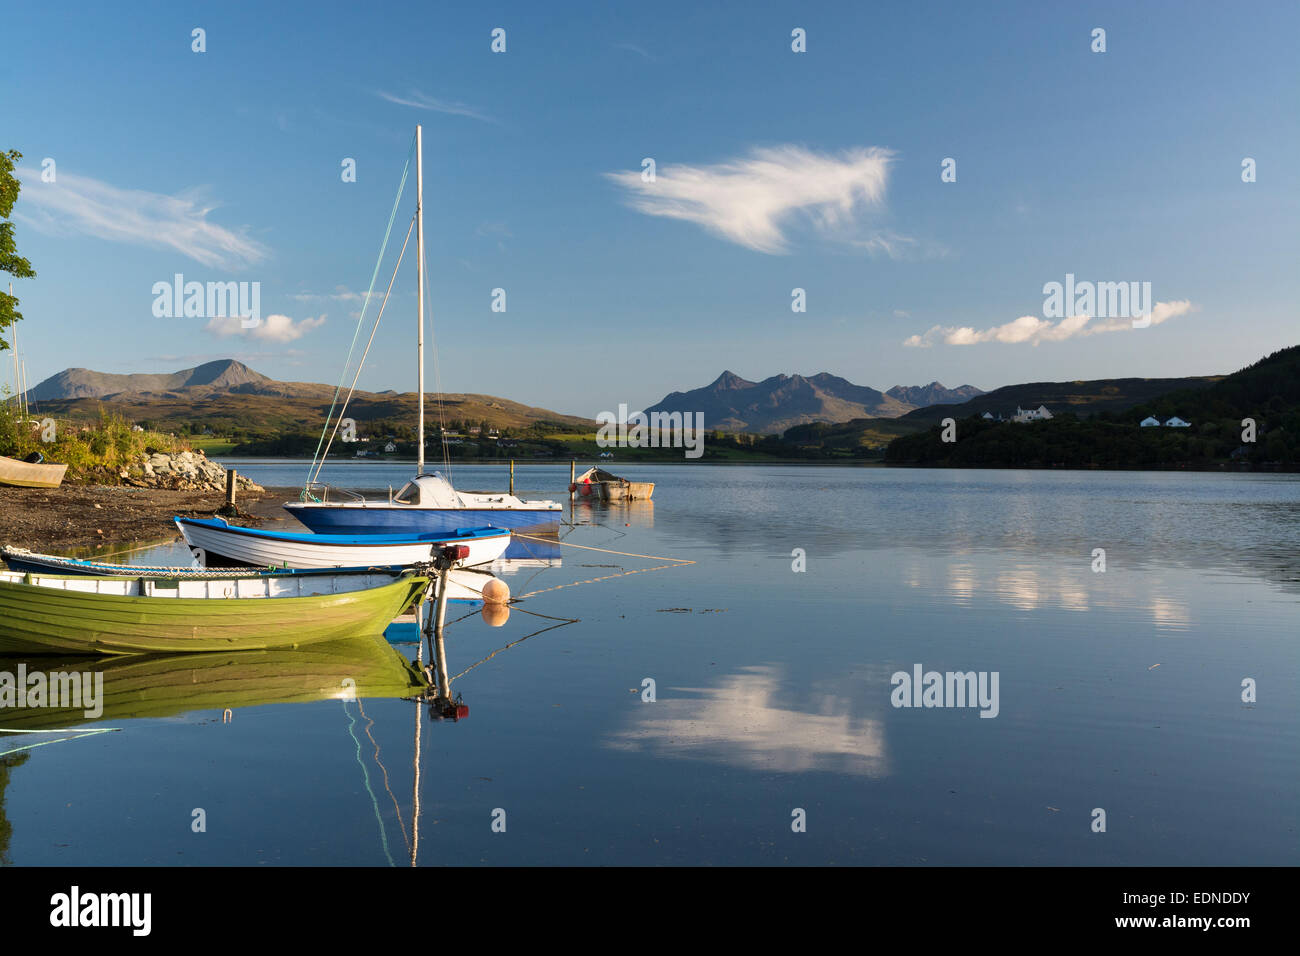 portree dinghy mooring with tranquil reflections isle of skye - Stock Image